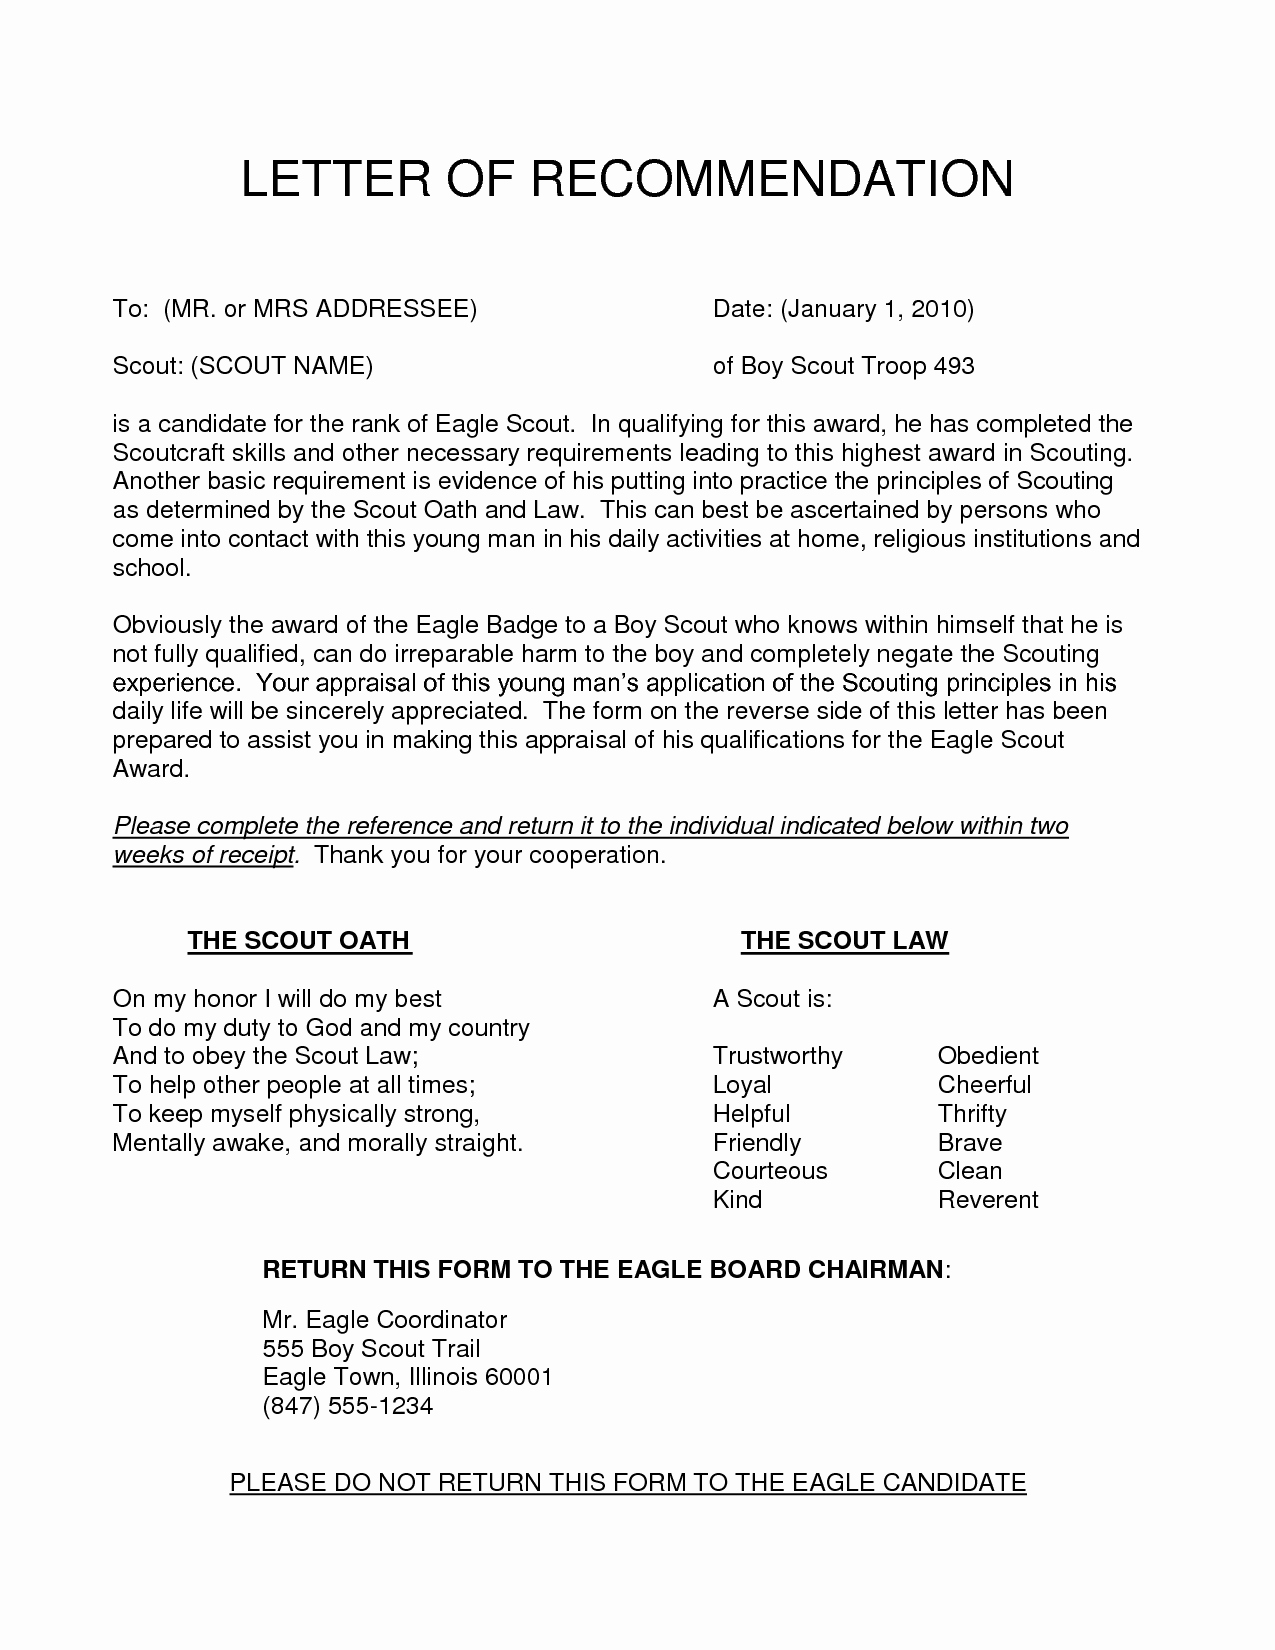 Letter Of Recommendation with Letterhead Luxury Content 2016 10 Eagle Scout